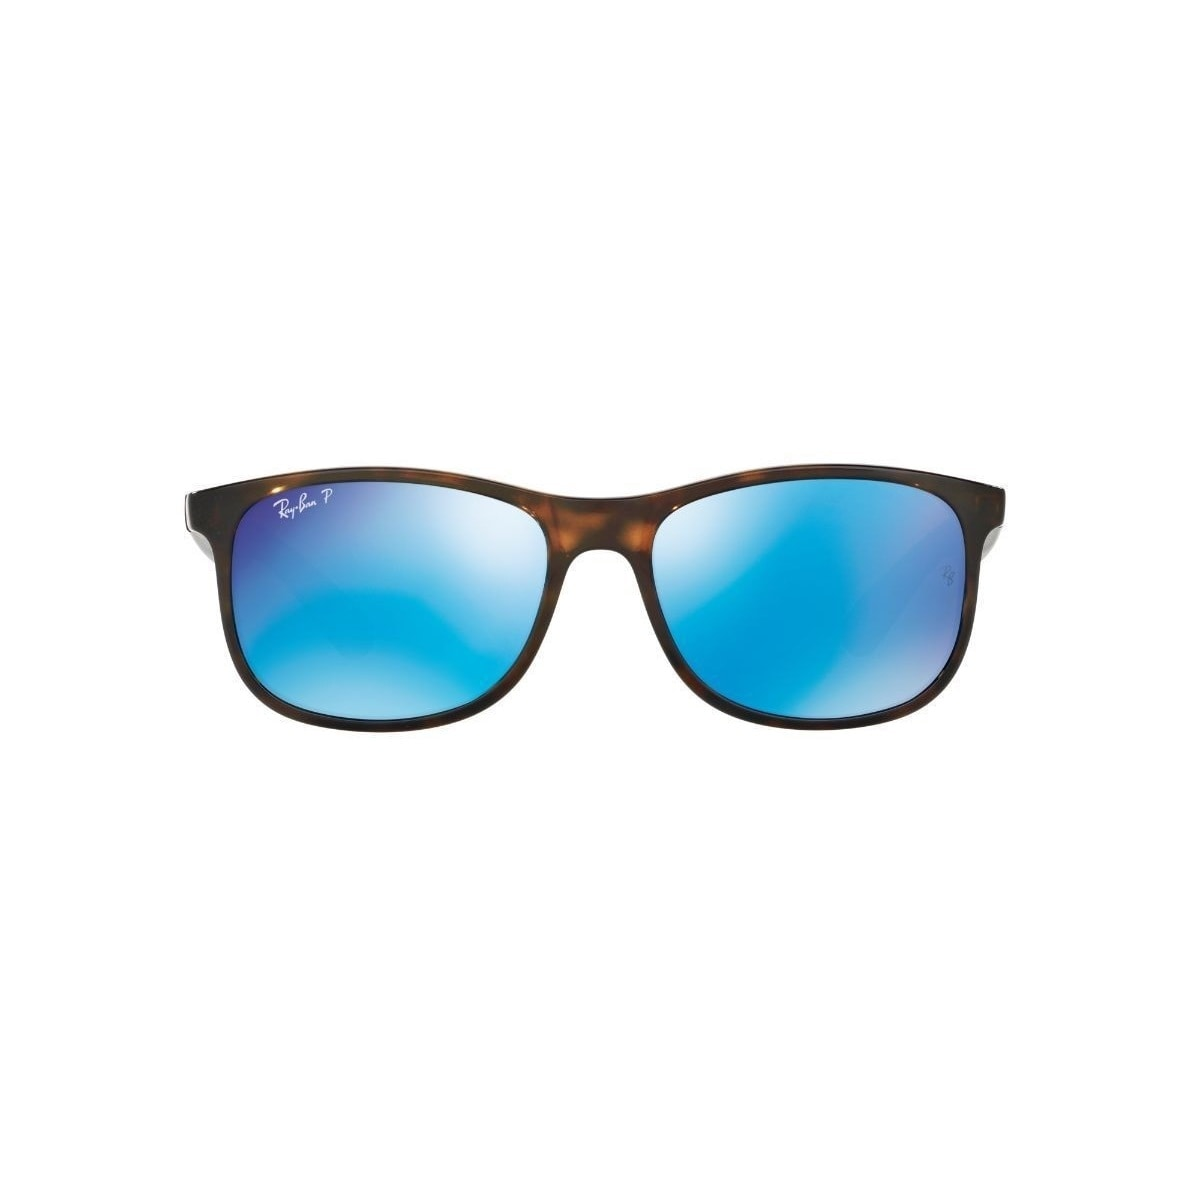 8f0c03d601d Shop Ray-Ban Andy RB4202 710 9R Men s Tortoise Frame Polarized Blue Flash  55mm Lens Sunglasses - Free Shipping Today - Overstock - 15287679